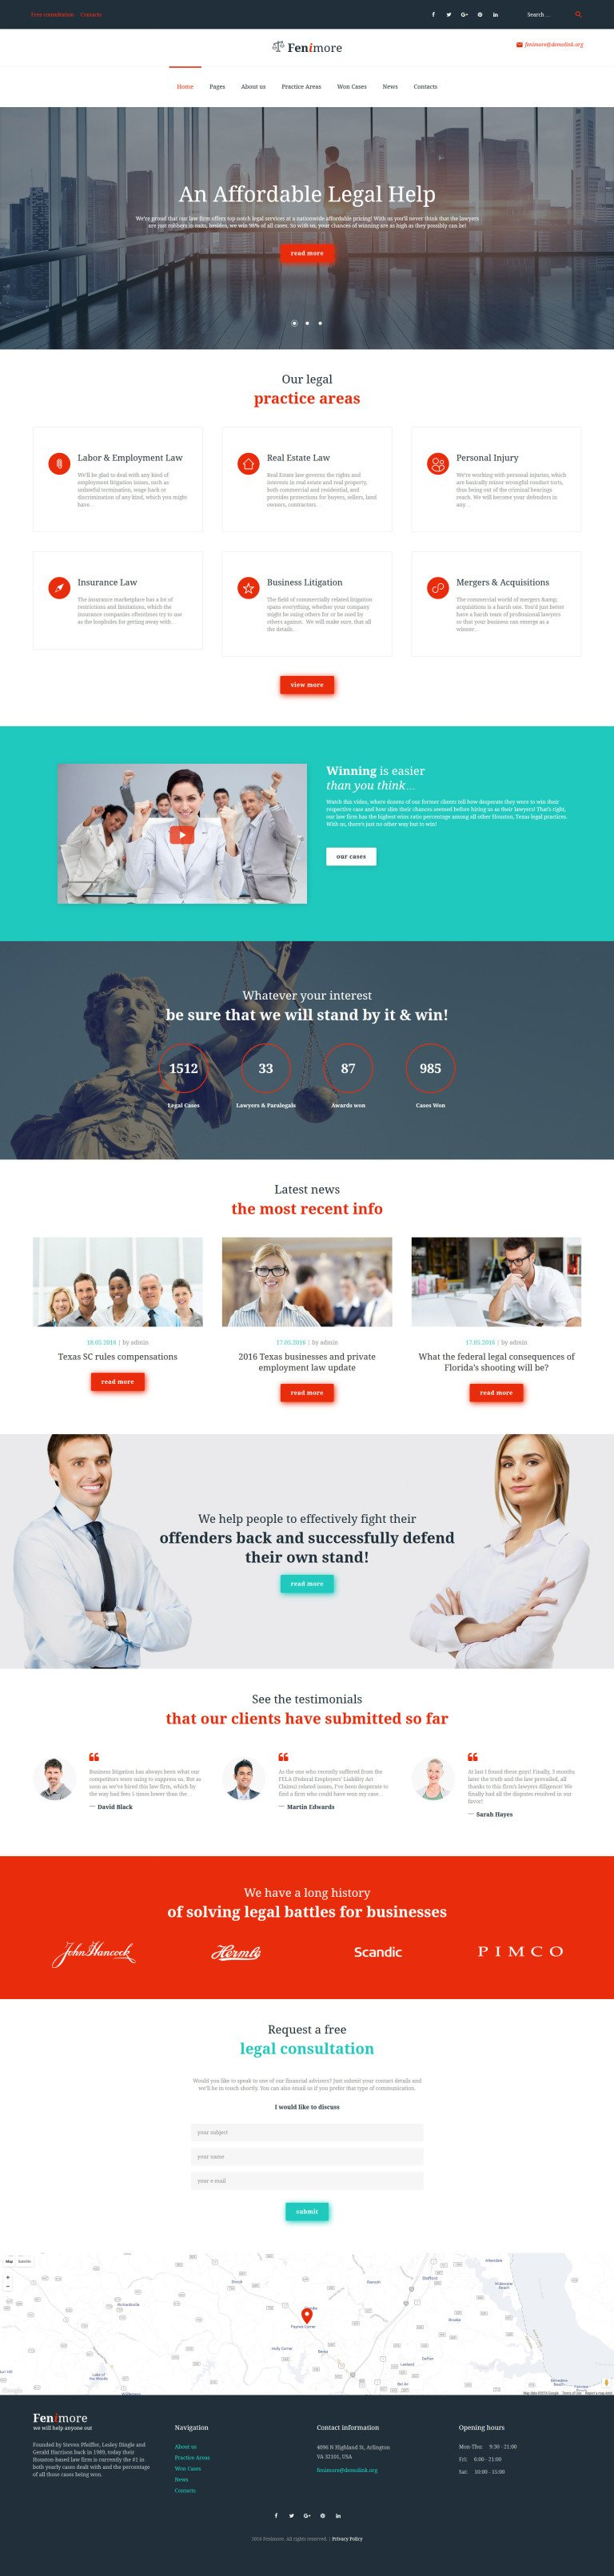 Fenimore - Law Firm WordPress Theme New Screenshots BIG